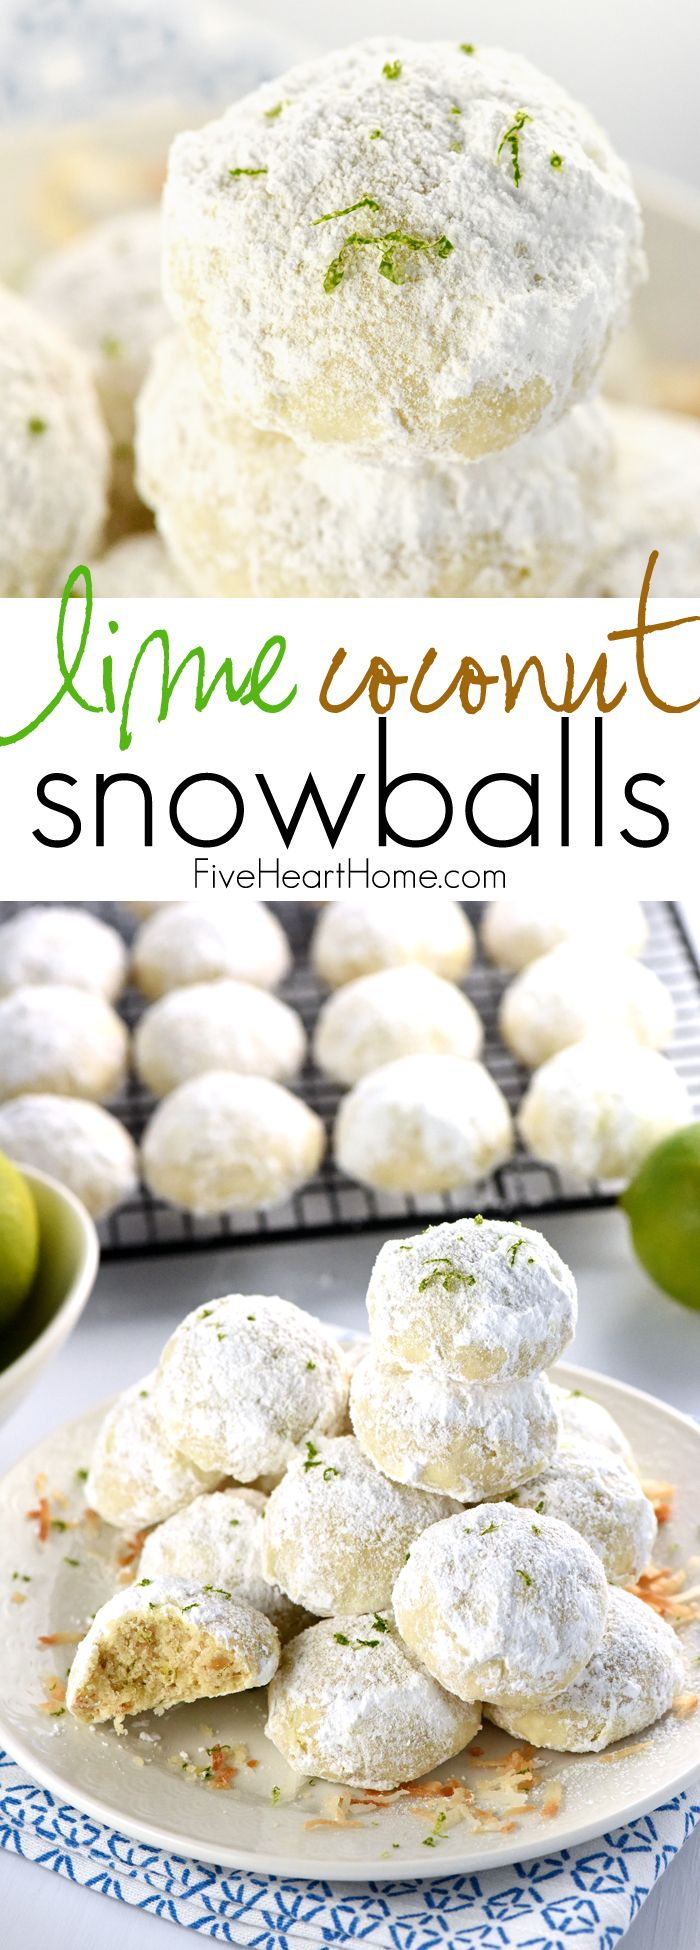 Lime Coconut Snowballs ~ tender shortbread-like cookies studded with lime zest & toasted coconut and generously rolled in powdered sugar for perfect year-round treats...from the lazy days of summer to a Christmas cookie platter! | FiveHeartHome.com